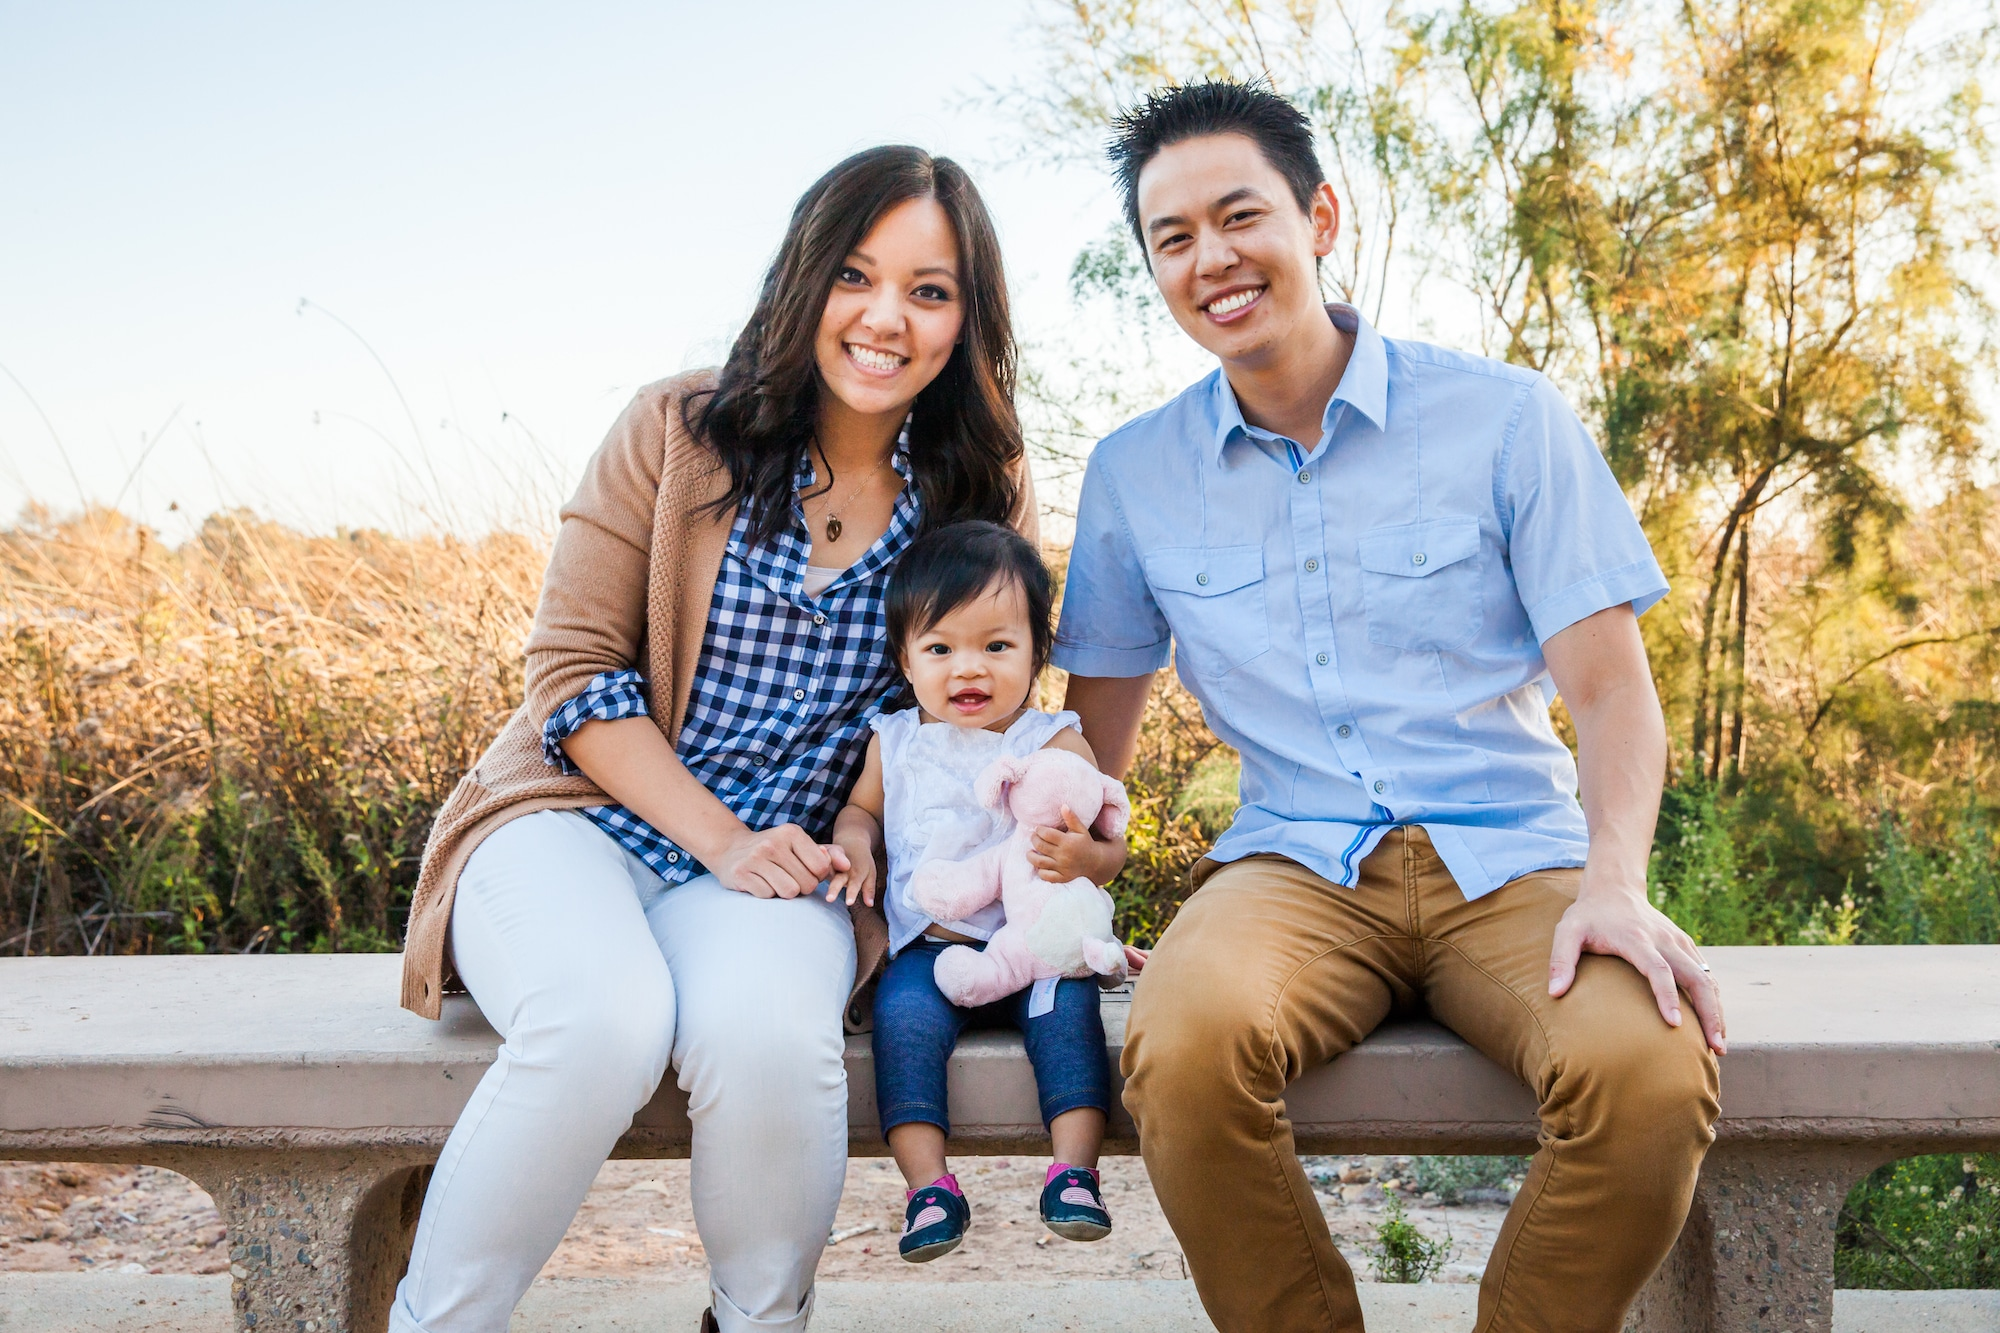 What to Wear for Family Photos - How to Choose Outfits that Coordinate Without Being Matchy